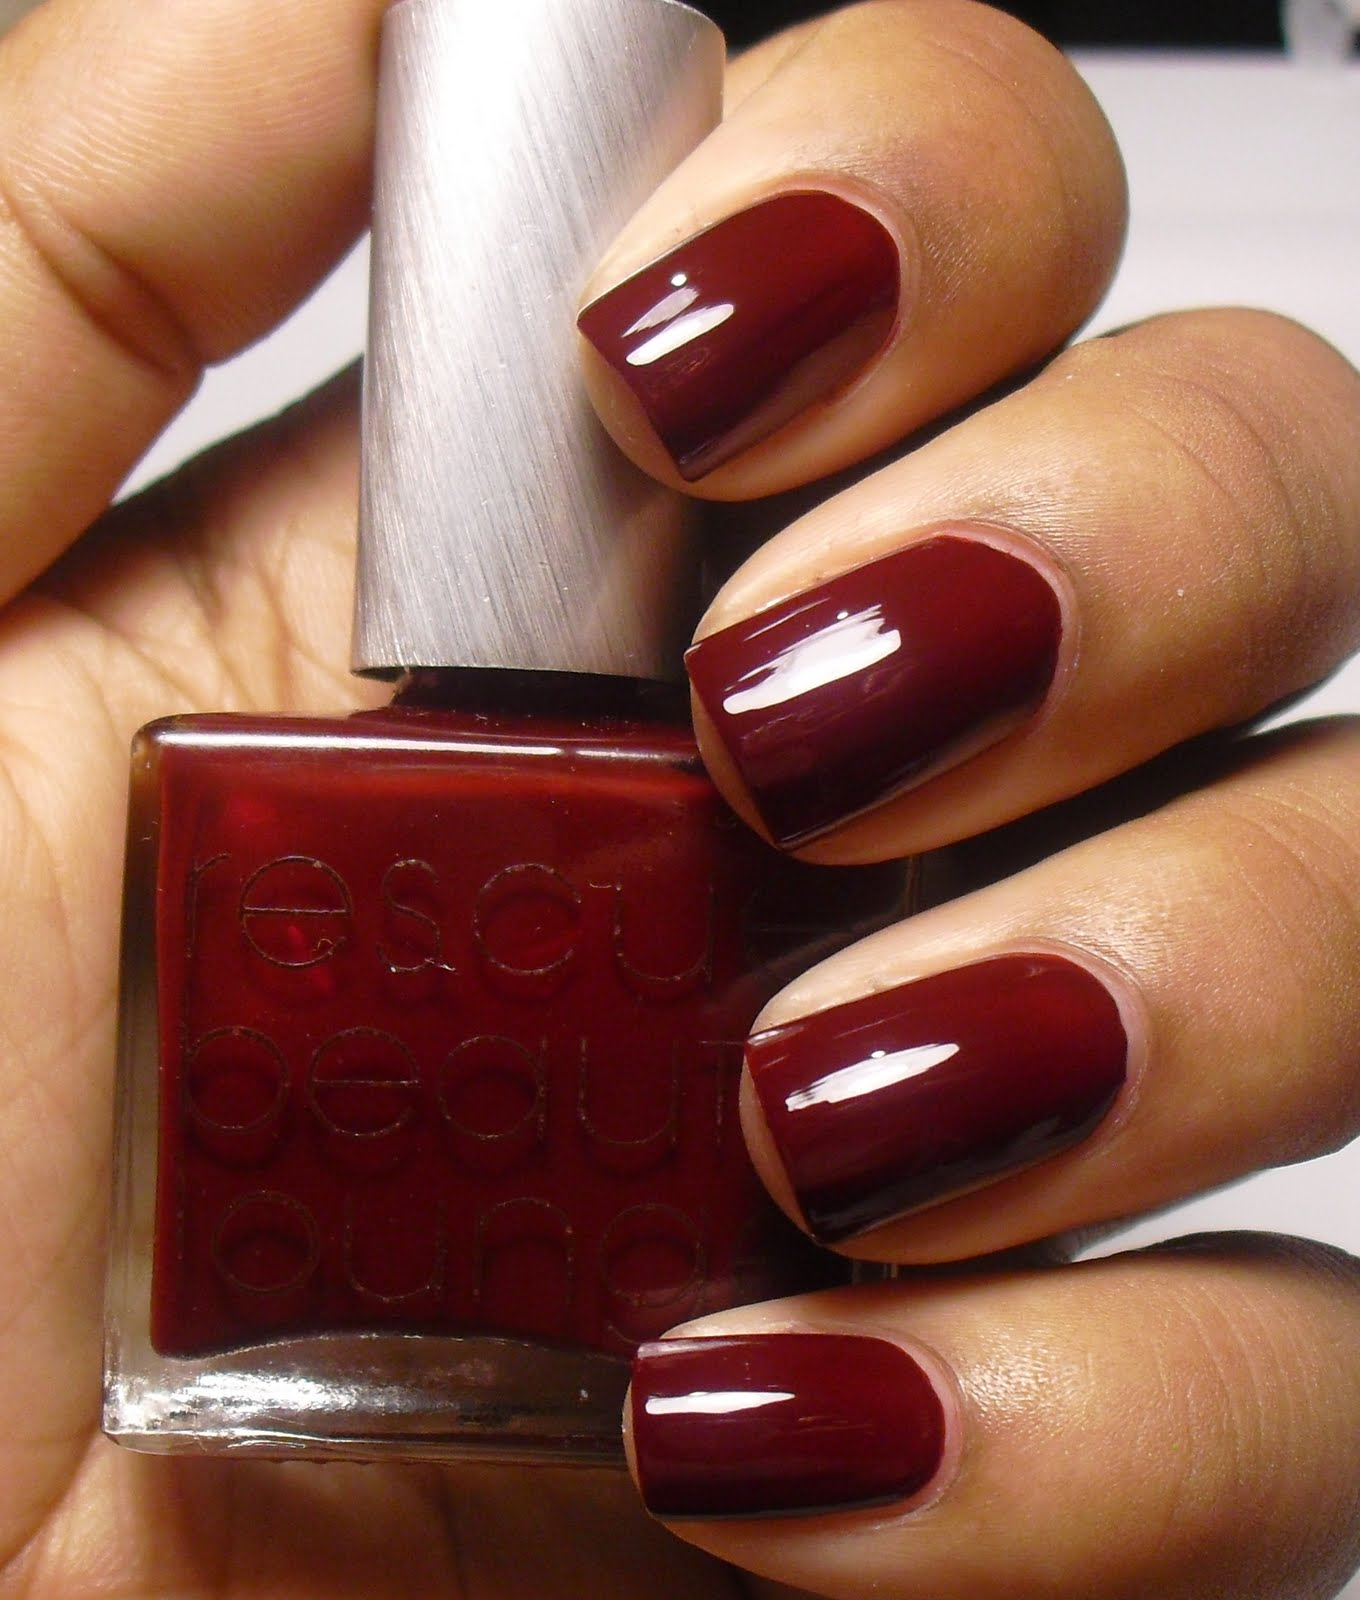 rescue-beauty-lounge-killa-red